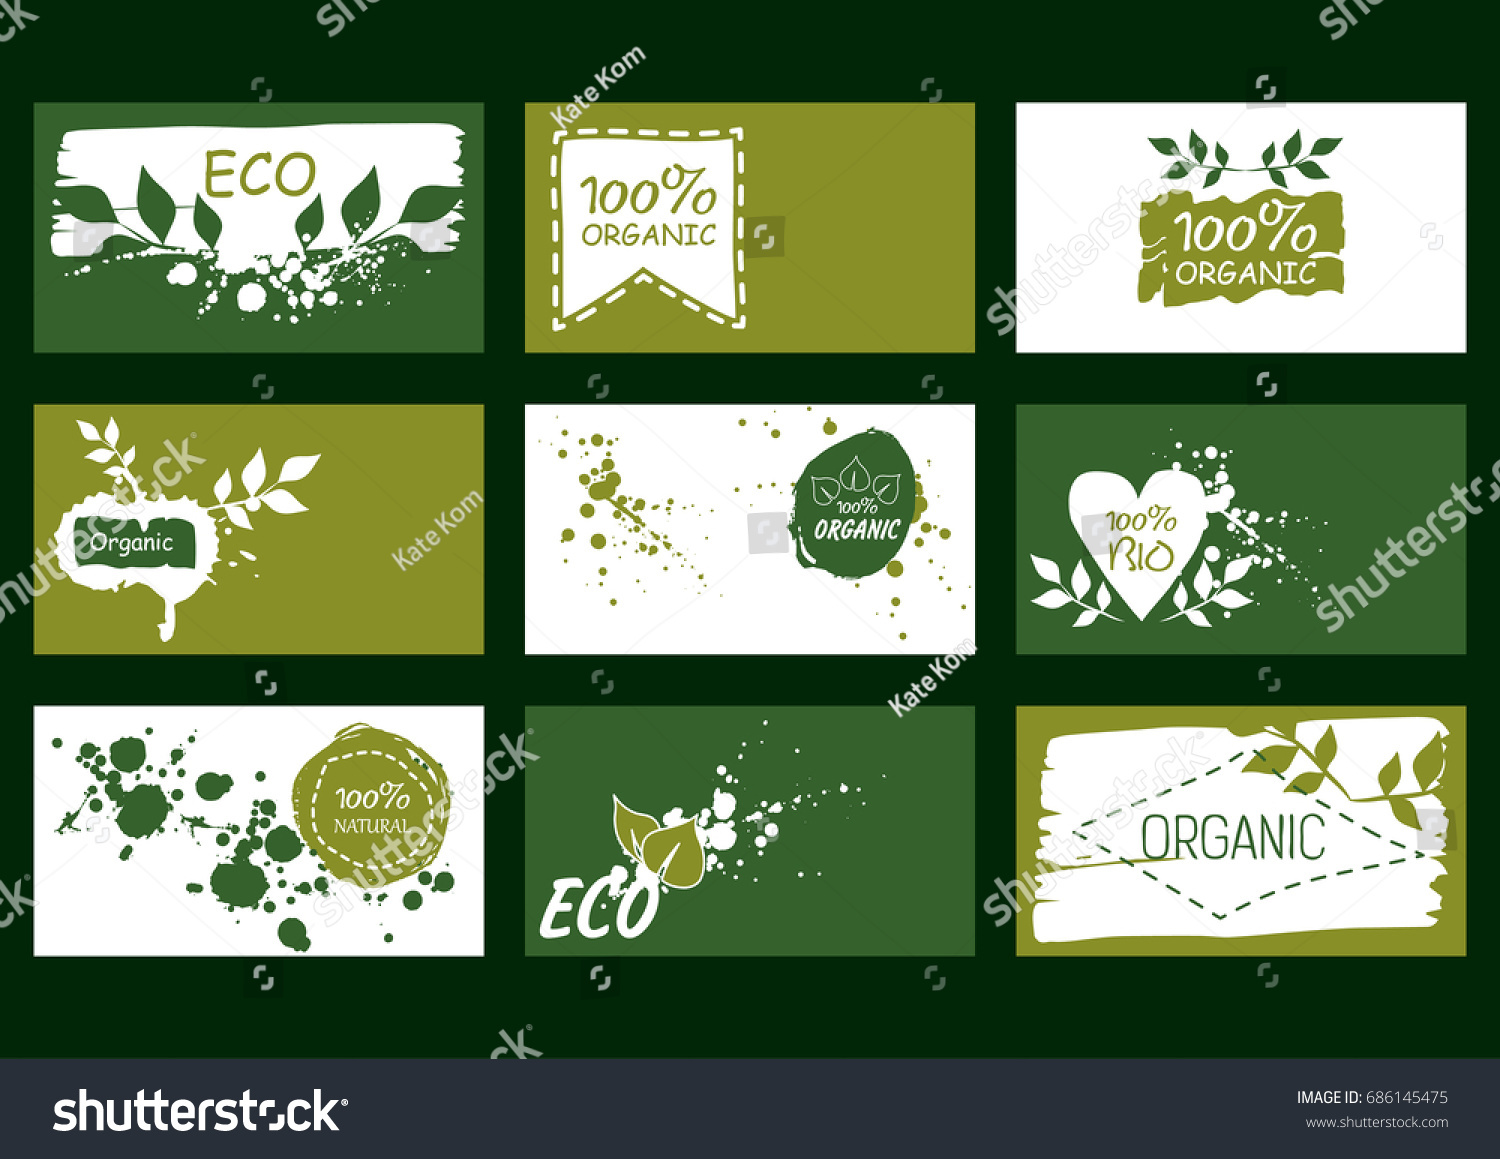 Set vector environmental business cards natural stock vector set vector environmental business cards natural stock vector 686145475 shutterstock colourmoves Images